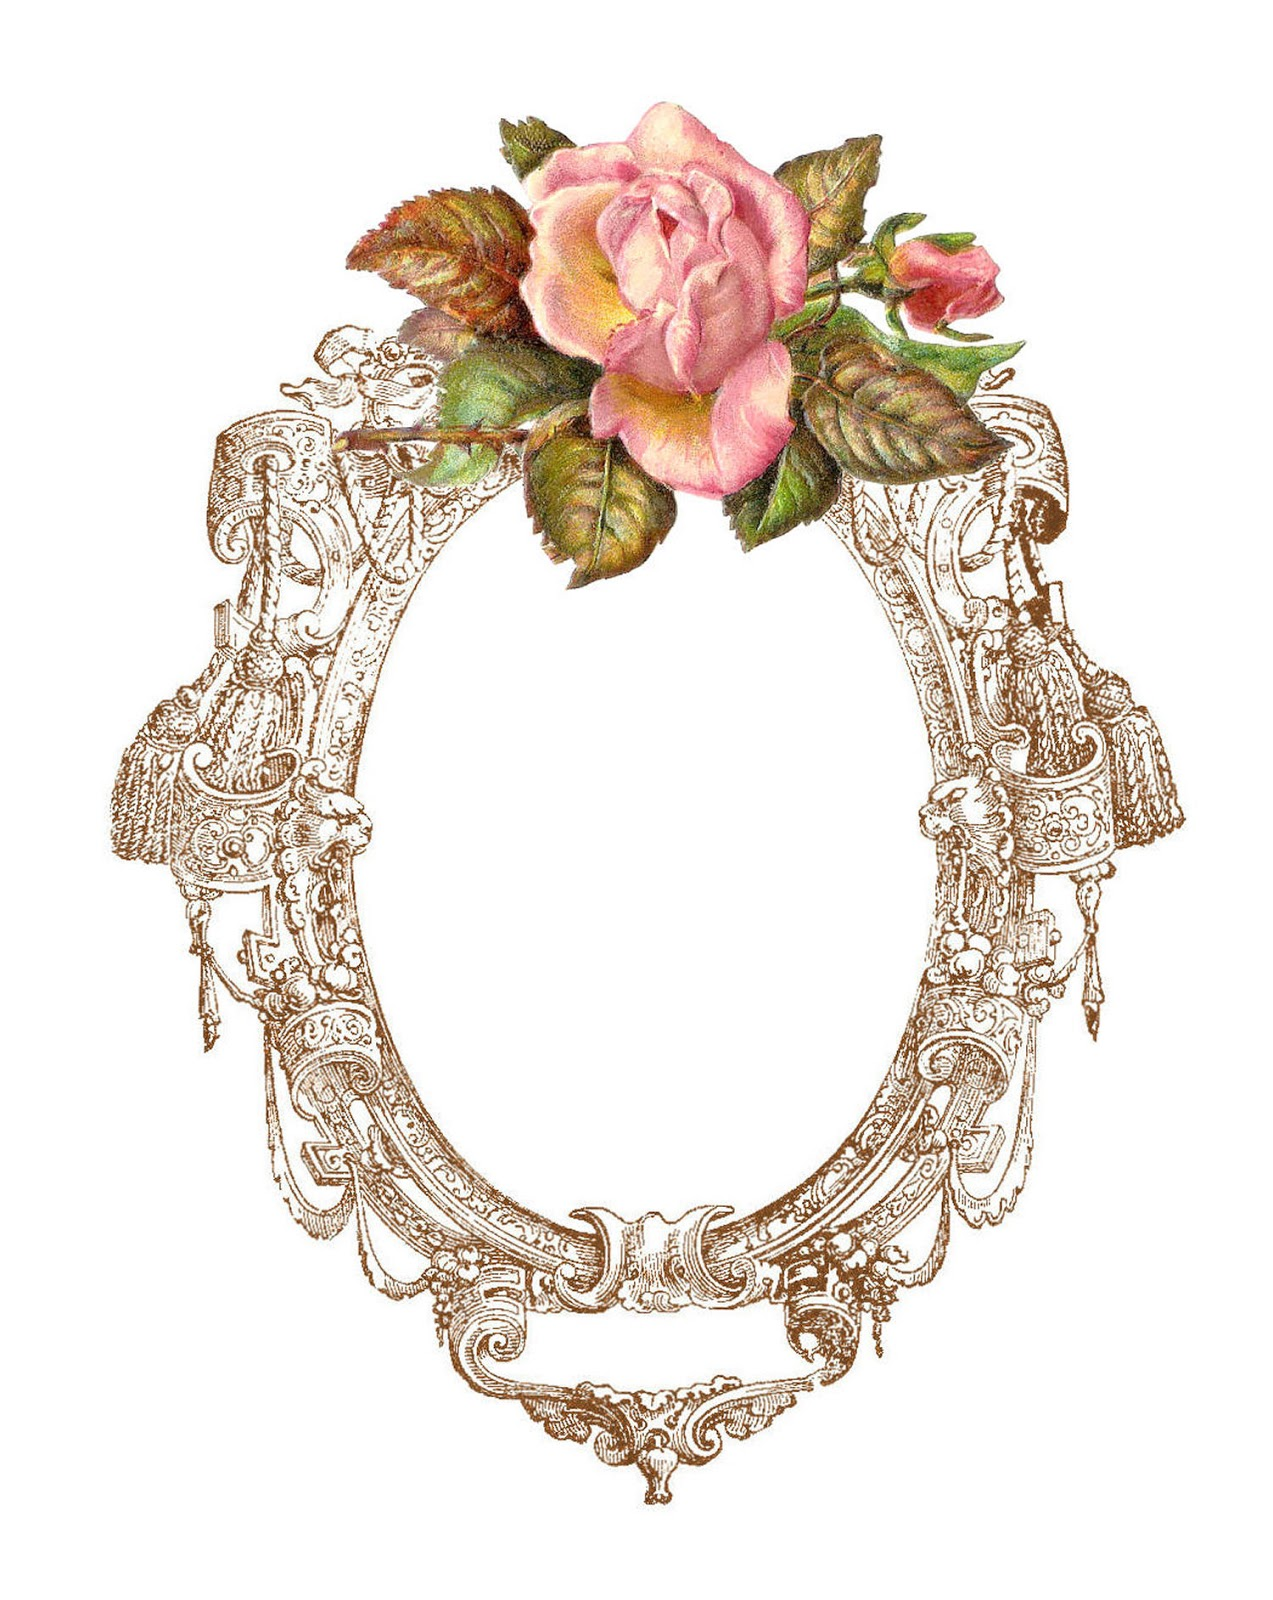 Antique Images Free Digital Frame Printable With